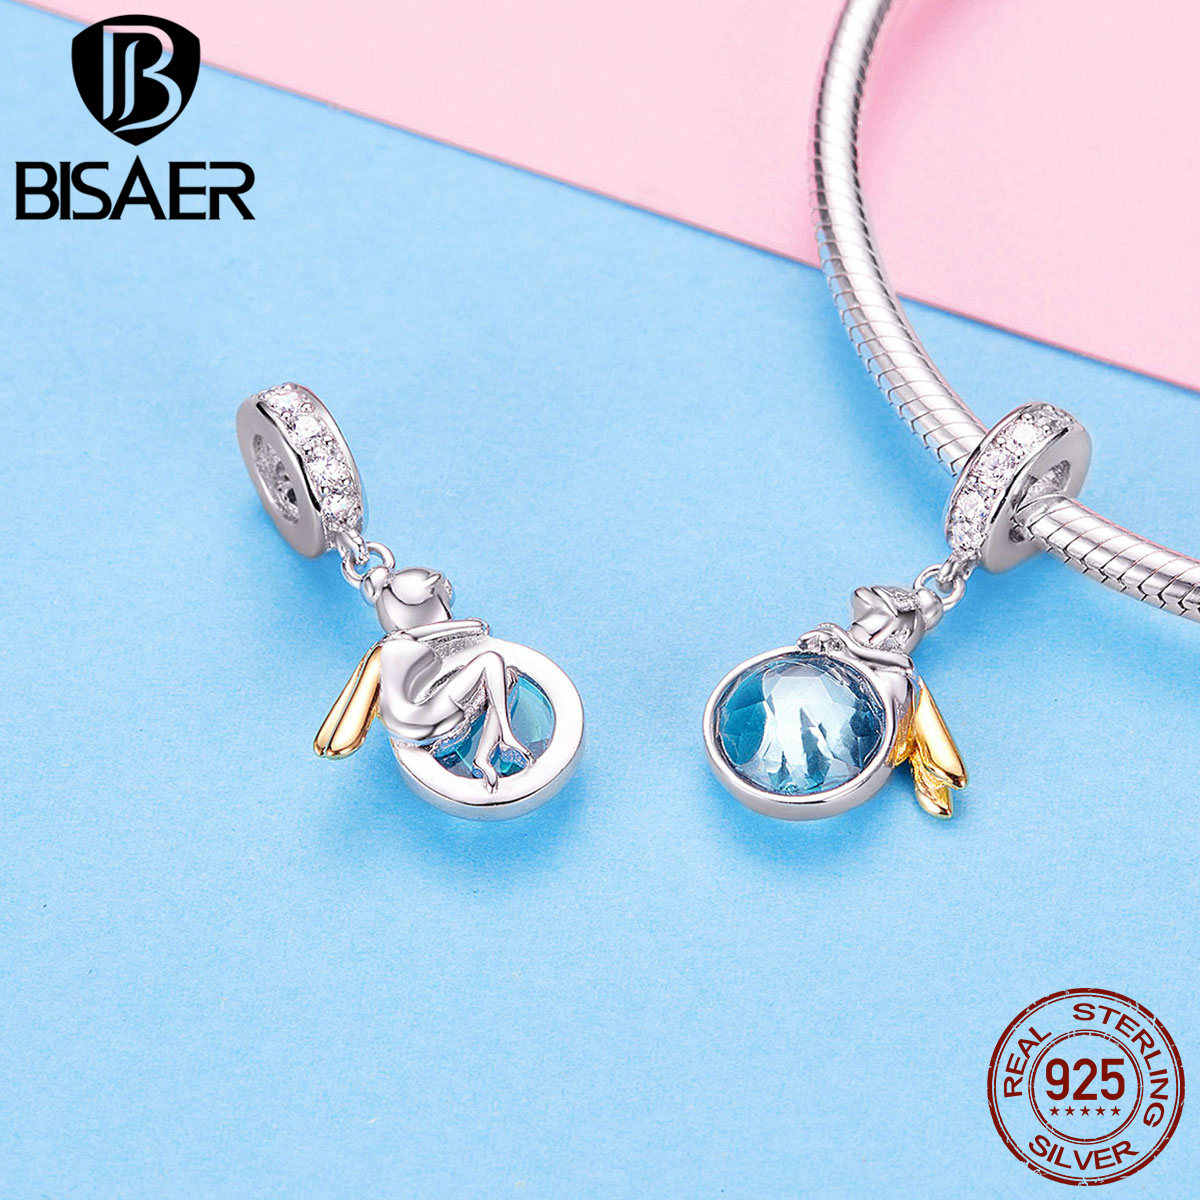 BISAER 925 Sterling Silver Magic Mirror Angle Fairy Pendant for Original Charm Bracelet or Necklace Fashion Jewelry GAC057